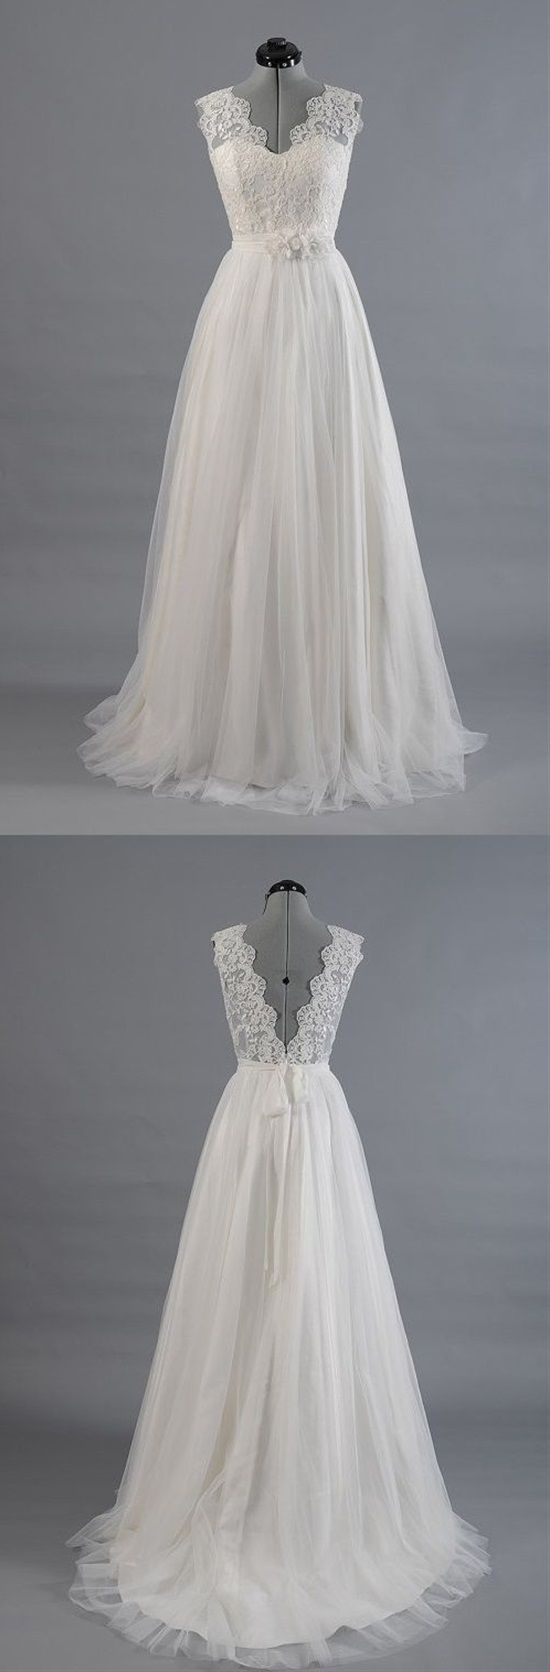 Choosing your wedding dress is the most important part of planning your big day. You want it to be beautiful and unique, you don't want to fall behind trends too. So we brought you a collection of the best wedding dresses this year, to keep your big day unique and trendy.